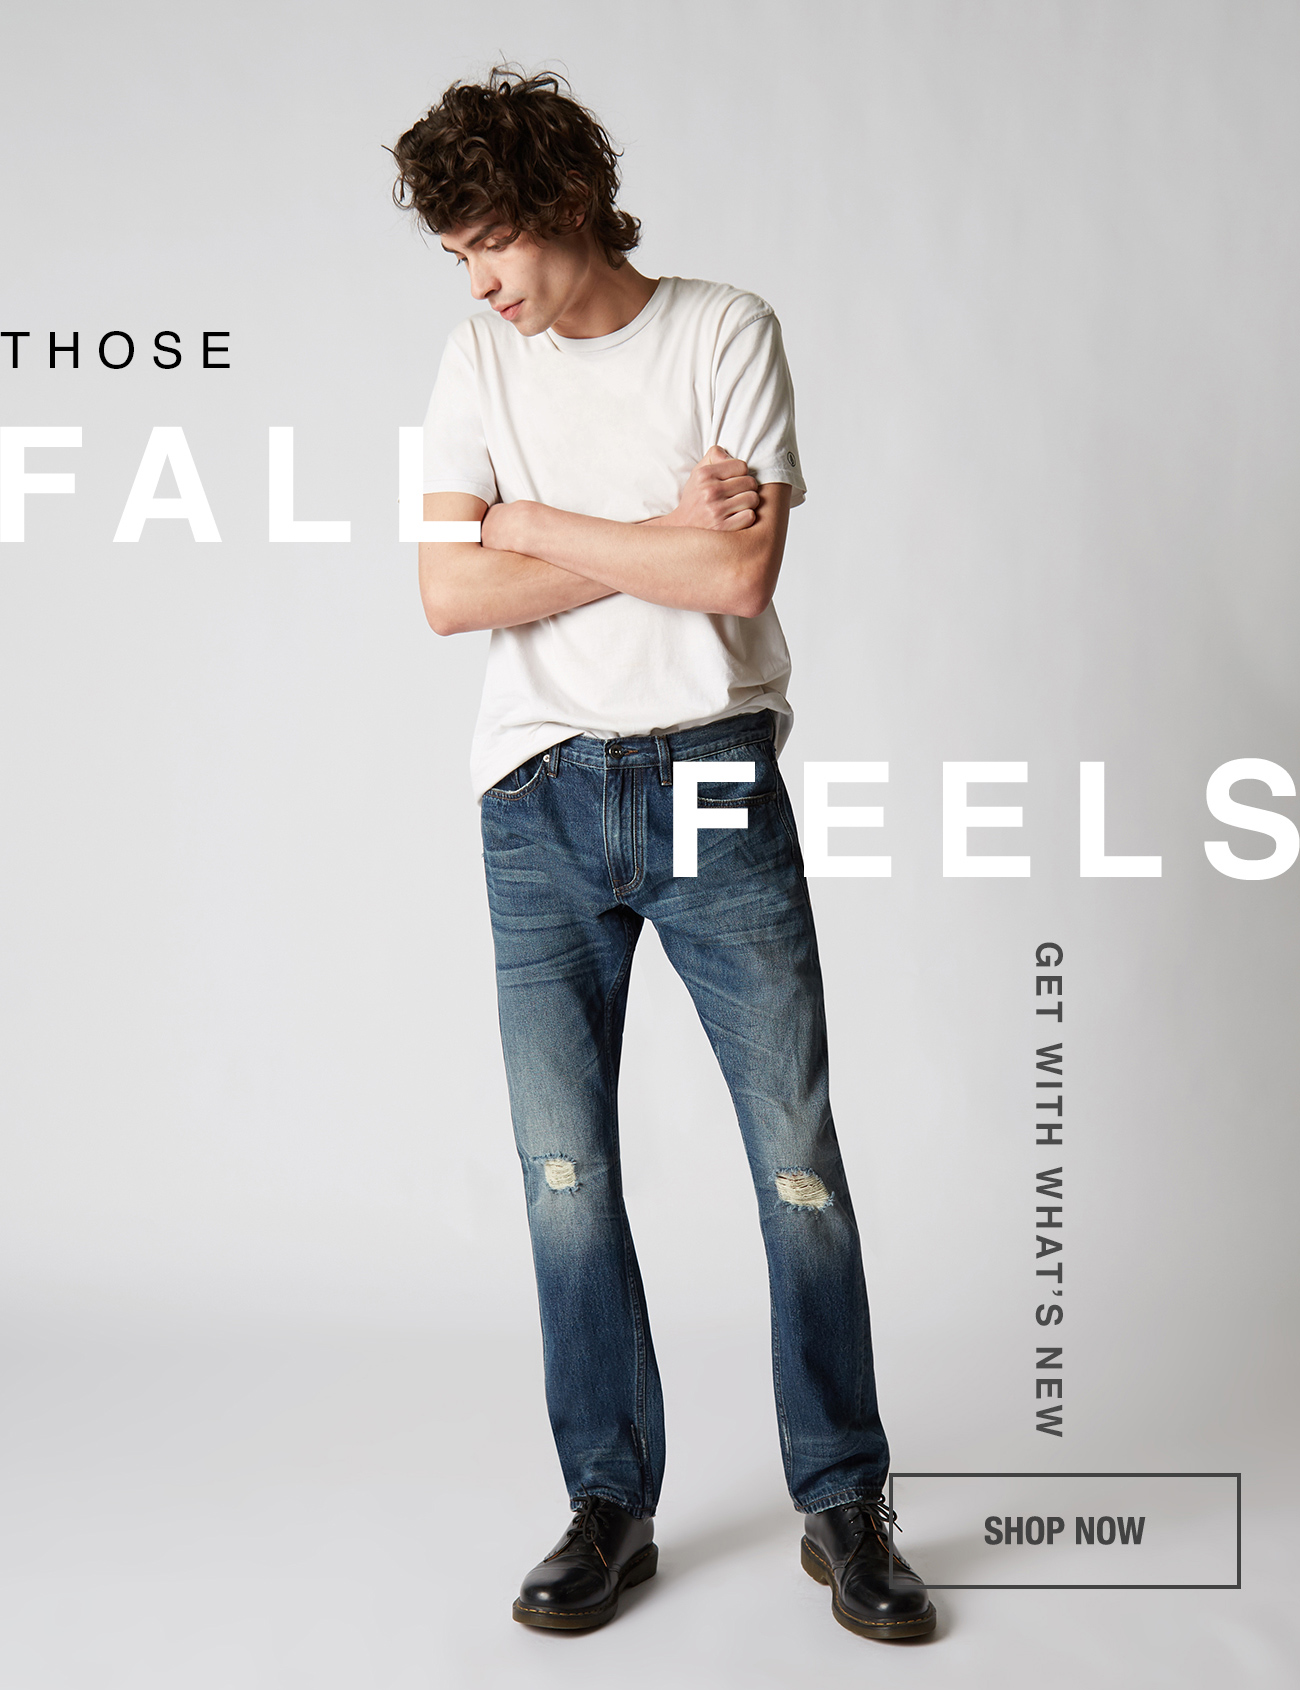 Those Fall Feels Get With What's New. Shop Now.